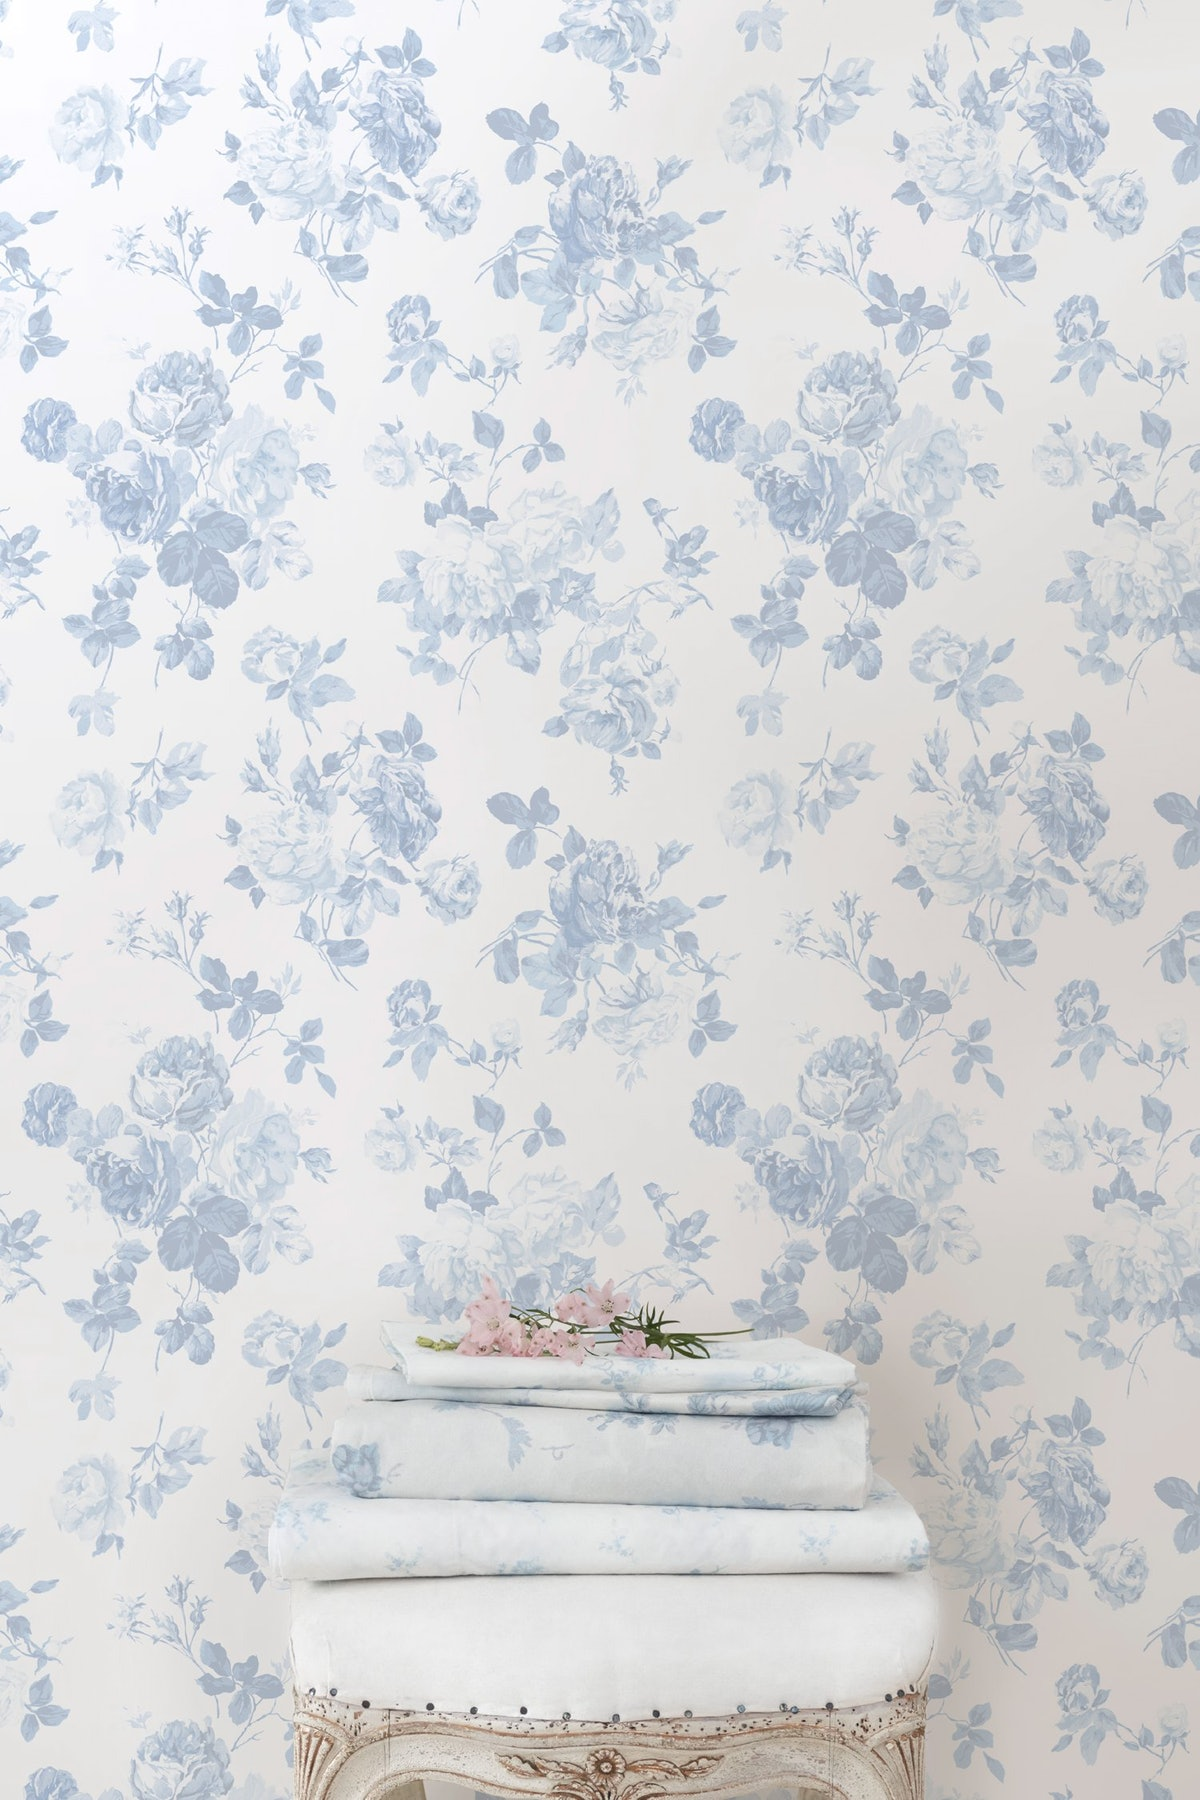 Everblooming Rosettes Wallpaper